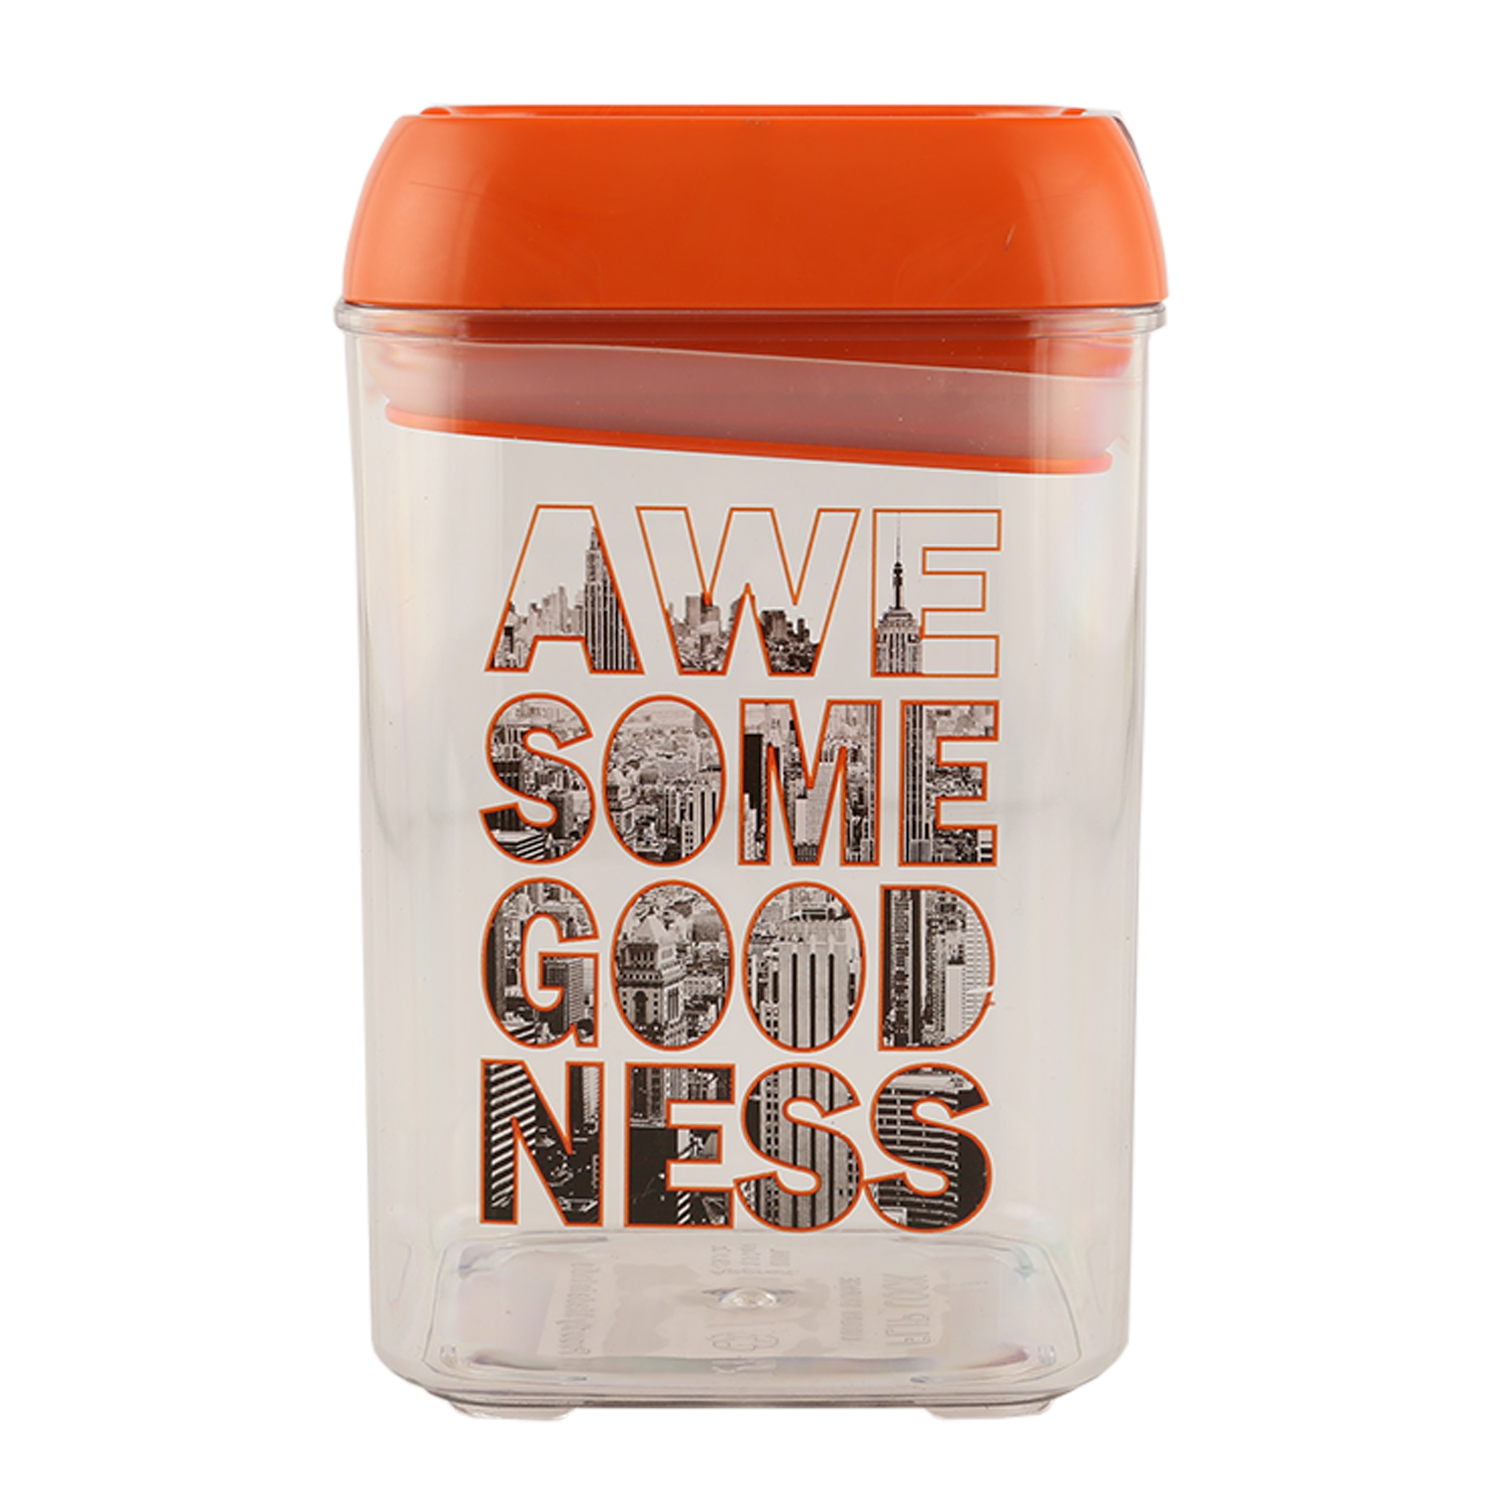 Awesome Goodness Big Cont 1170 Ml Opalware Containers in Orange Colour by Living Essence